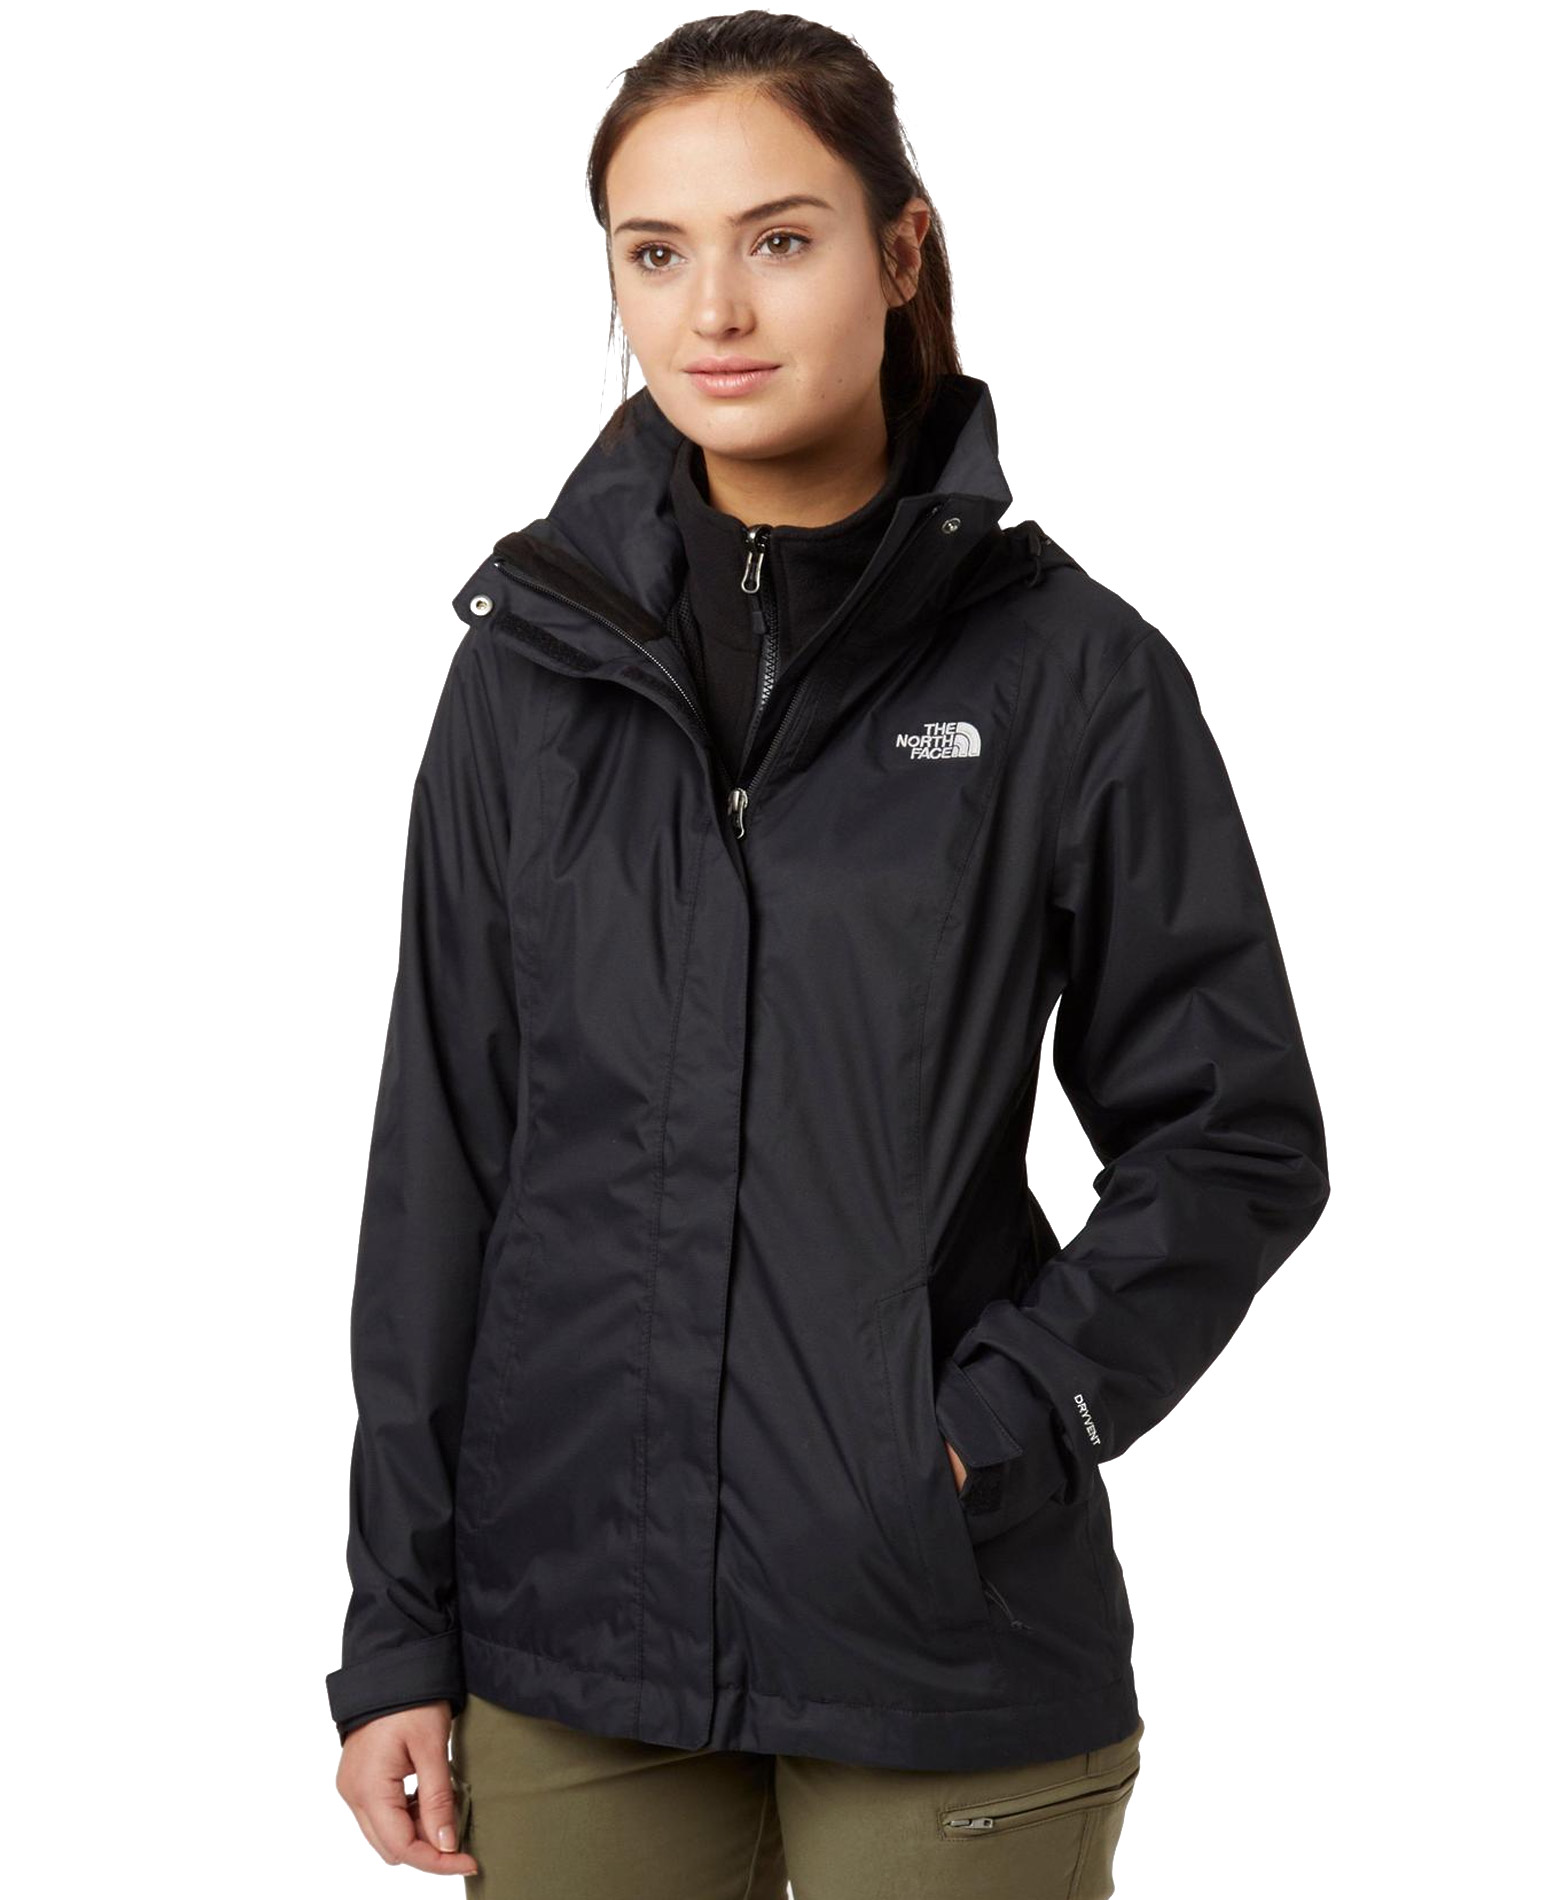 THE NORTH FACE W EVOLVE II TRICLIMATE JACKET NFCG56KX7-KX7 Μαύρο